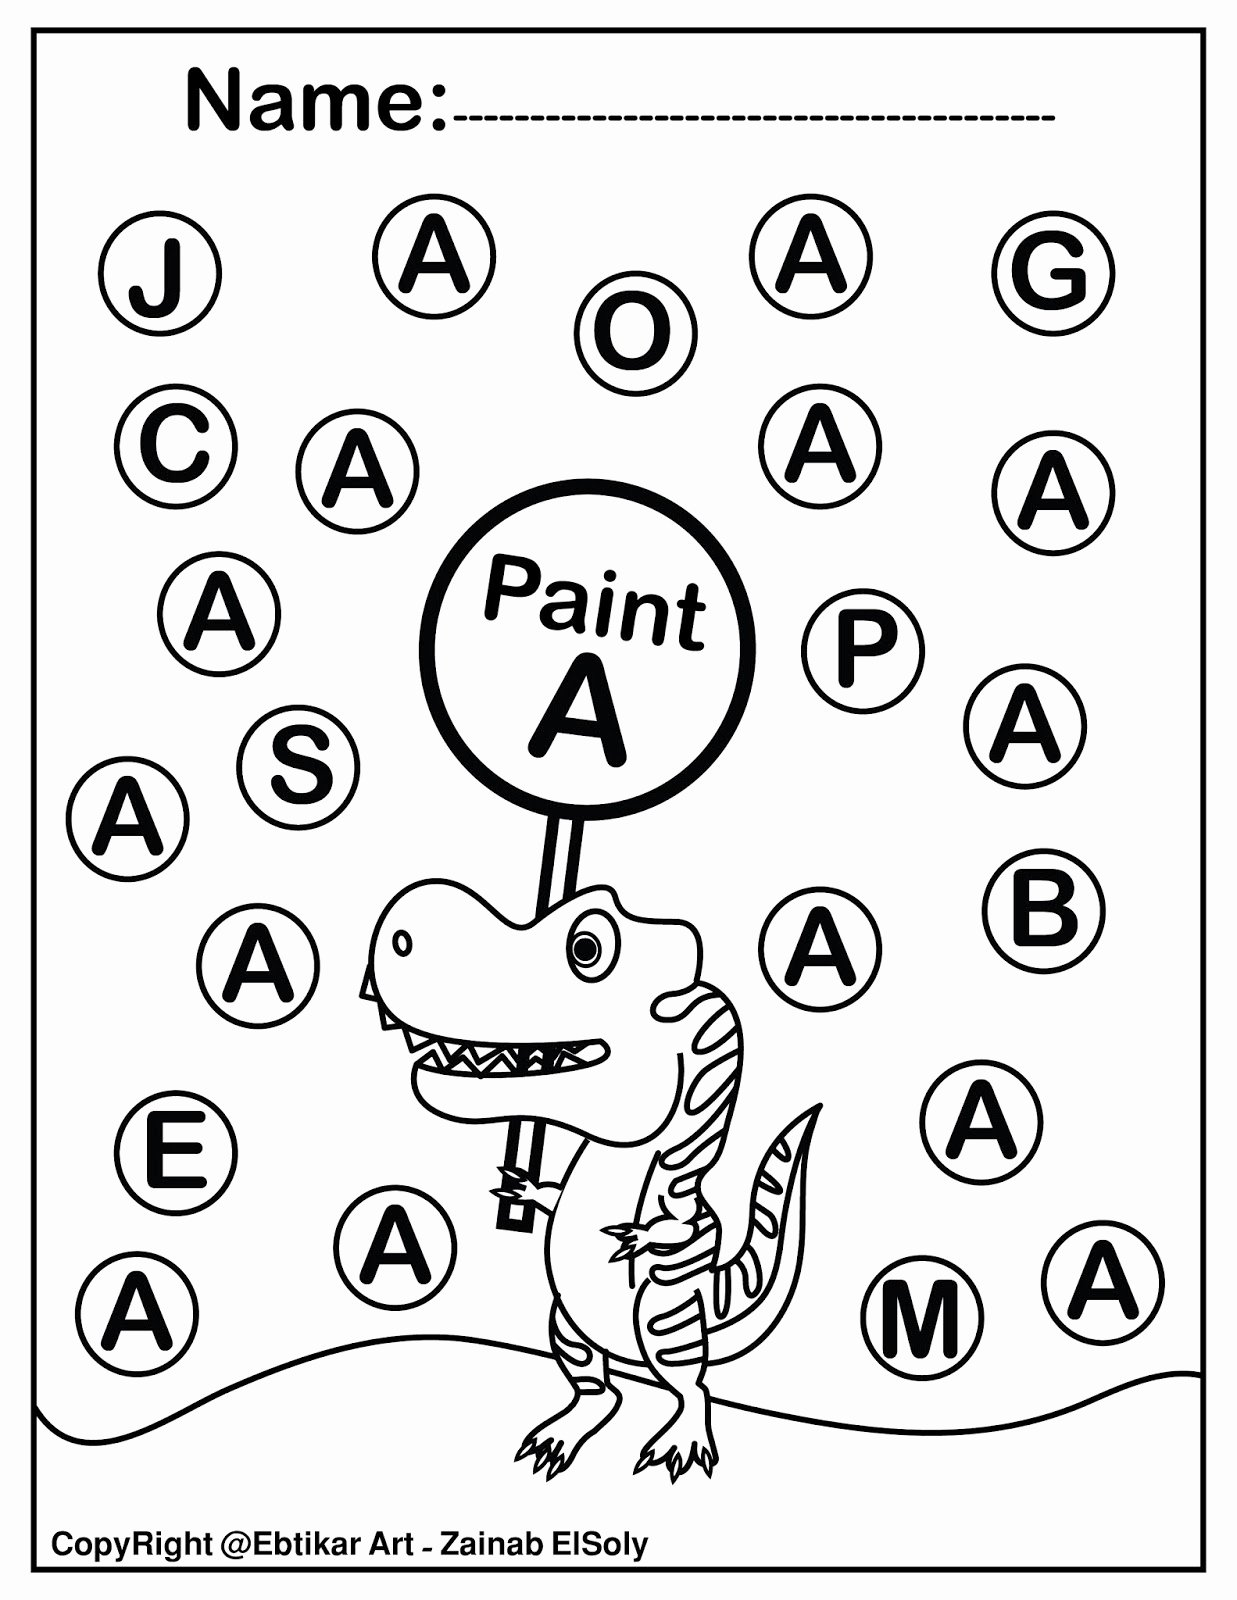 Painting Worksheets for Preschoolers top Worksheets Activity Sheets for Preschoolers with the